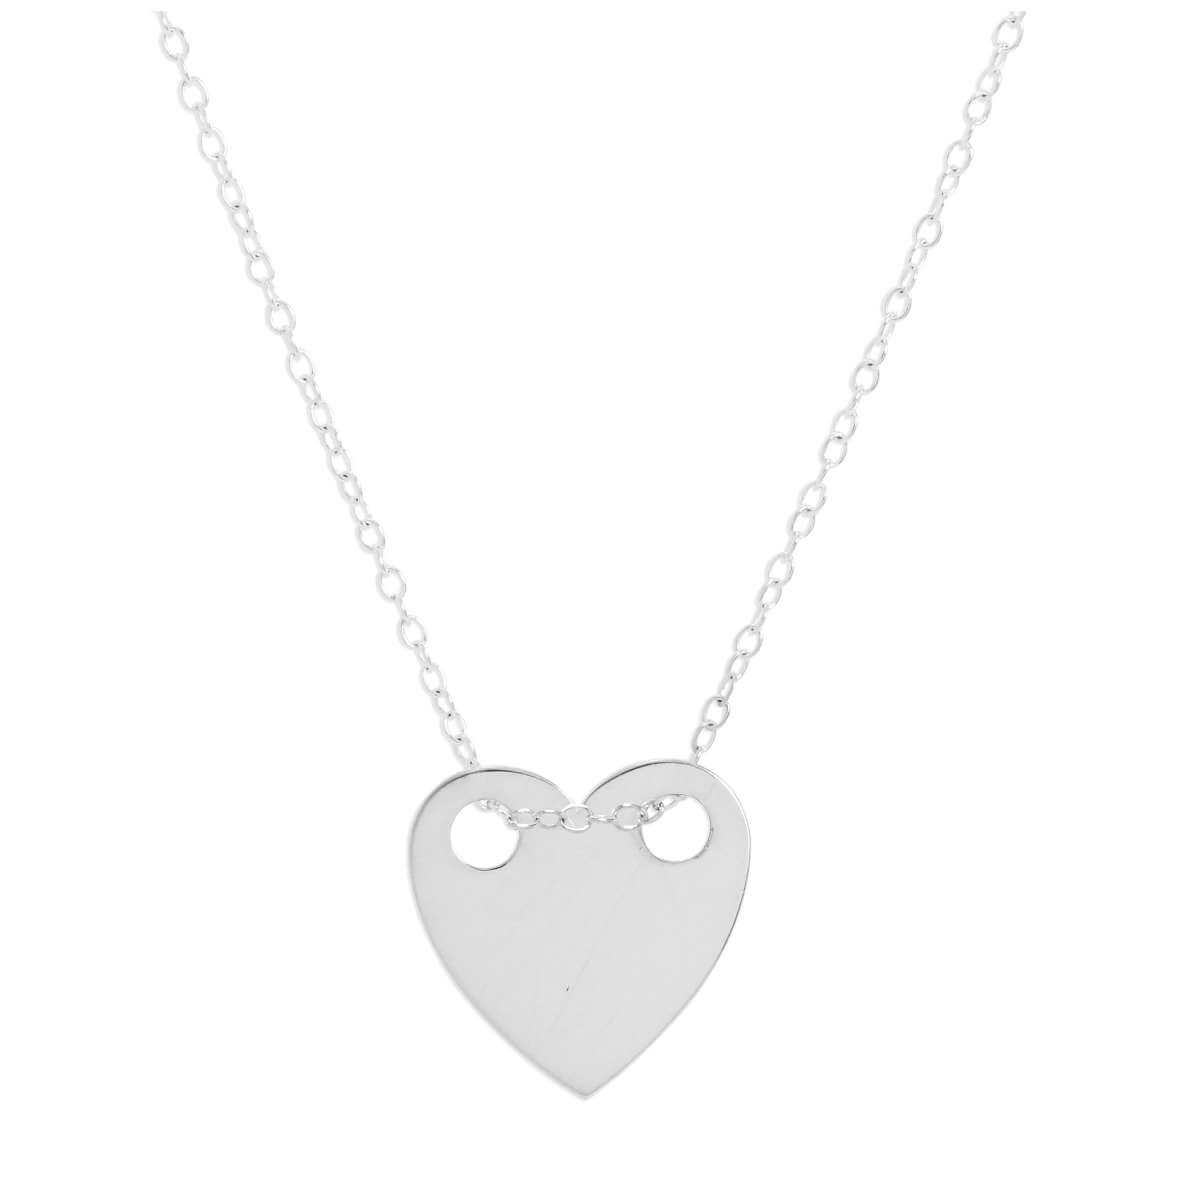 Sterling Silver Engravable Flat Heart Pendant Necklace 14 - 22 Inches